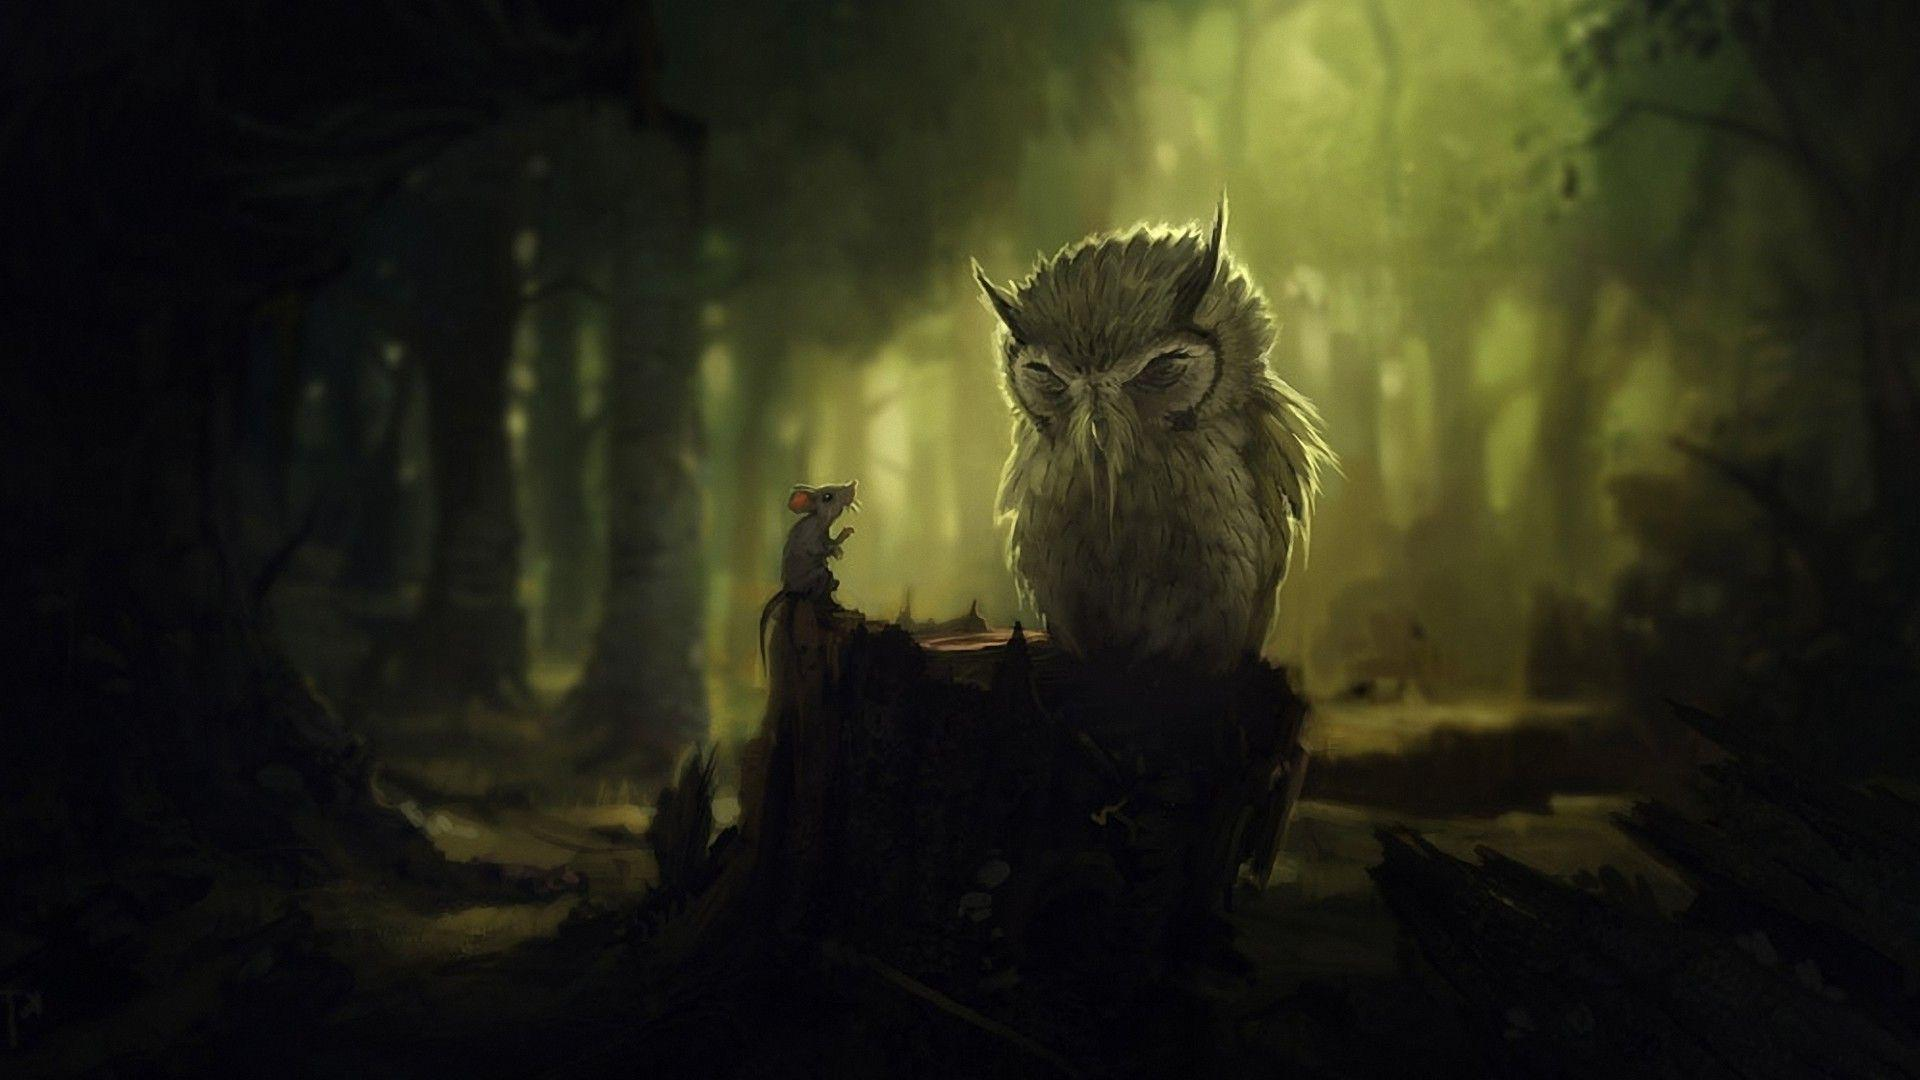 Wallpapers For > Dark Forest Wallpapers Widescreen